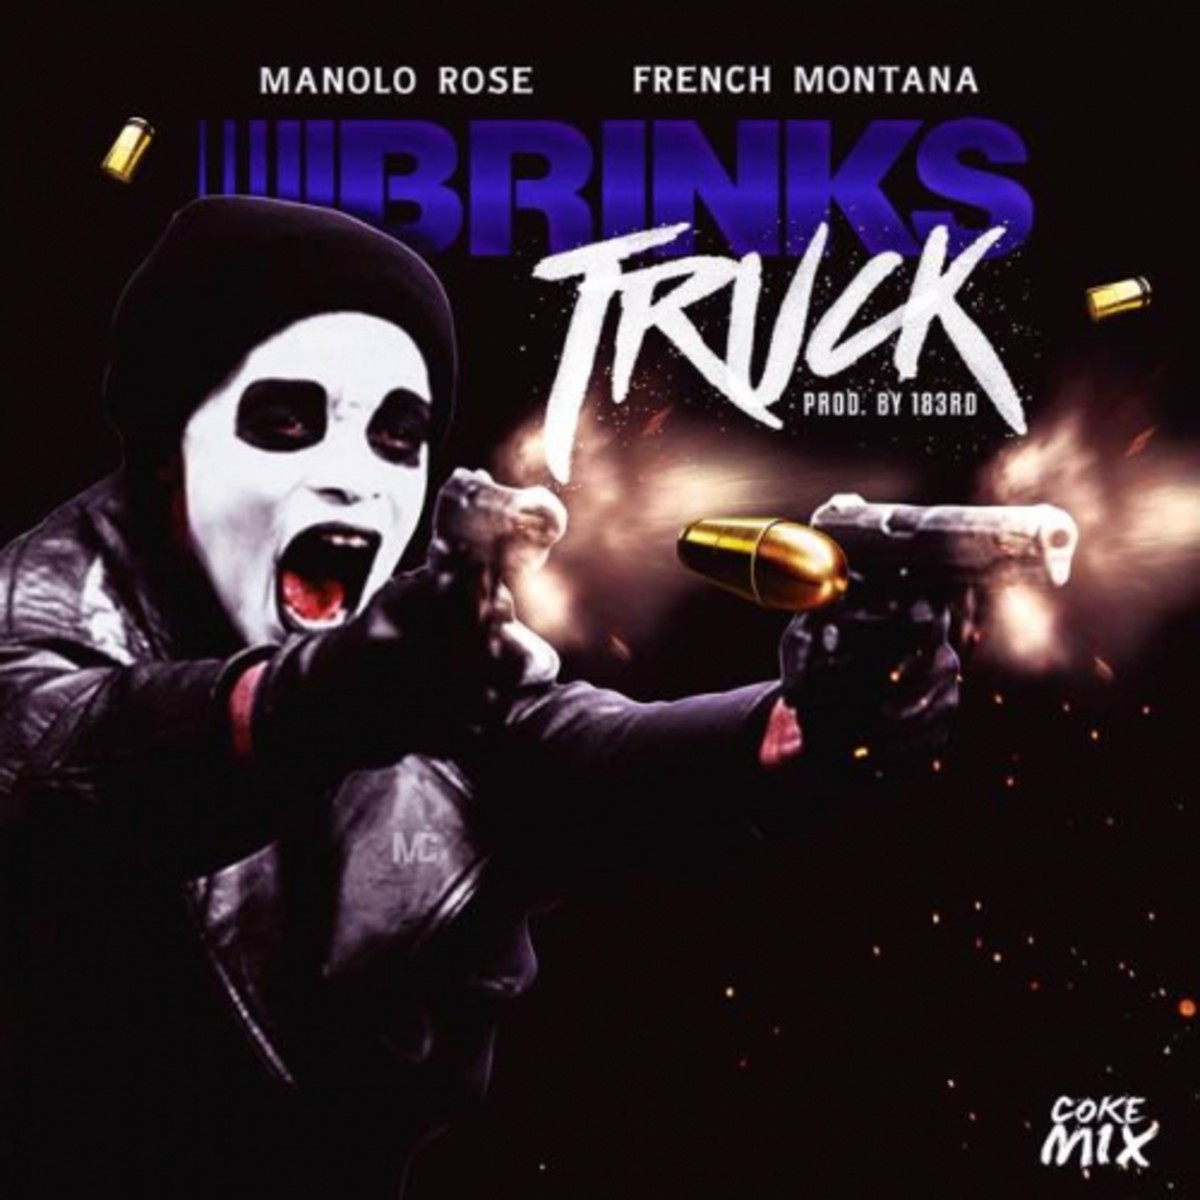 manolo-rose-brinks-truck-remix.jpg